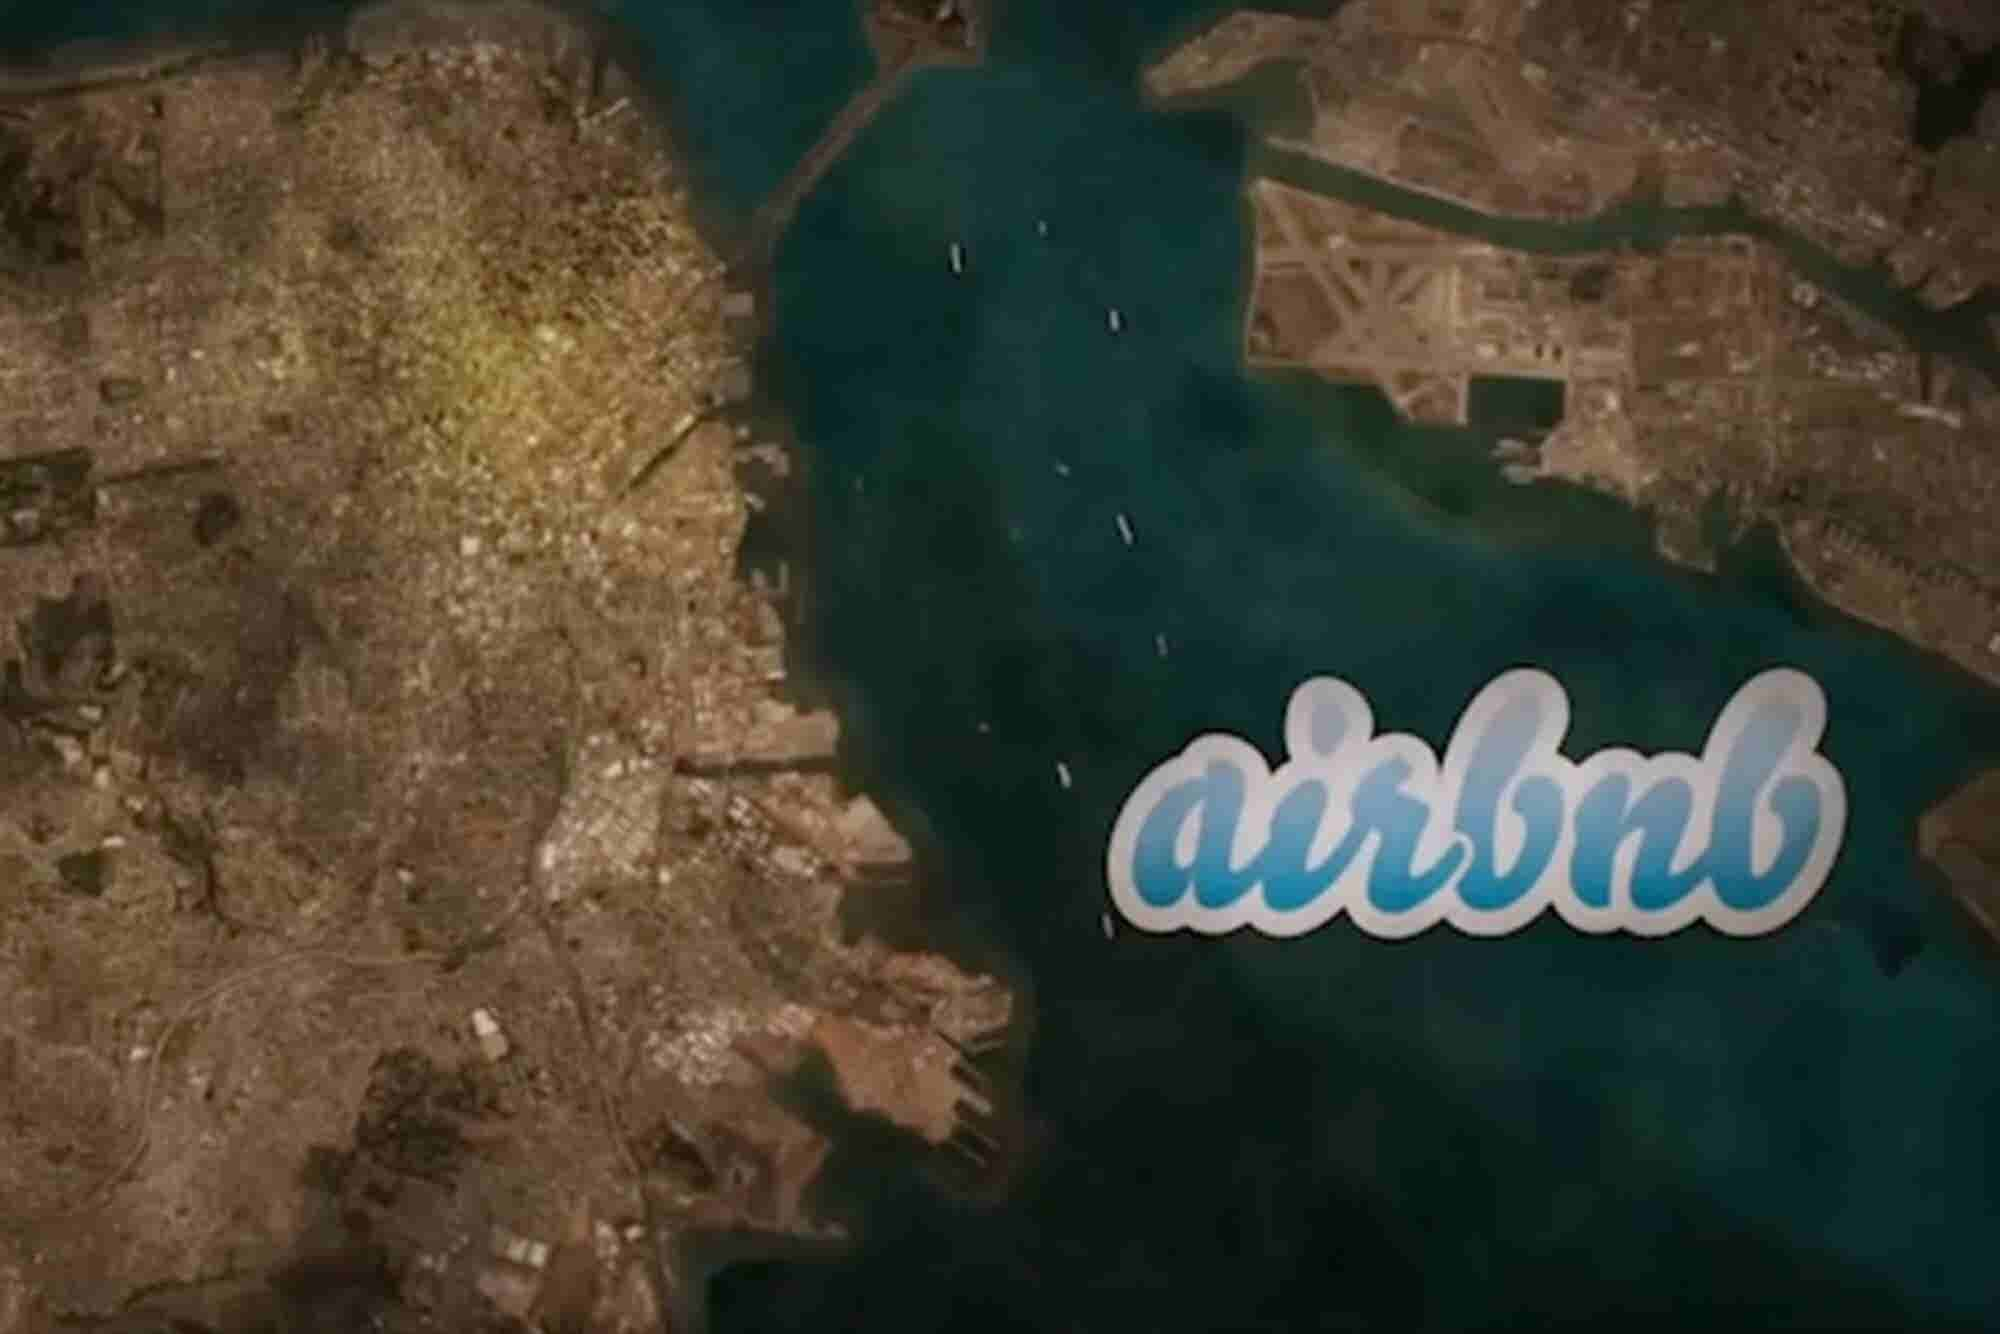 Airbnb's Latest Win: Weekly News